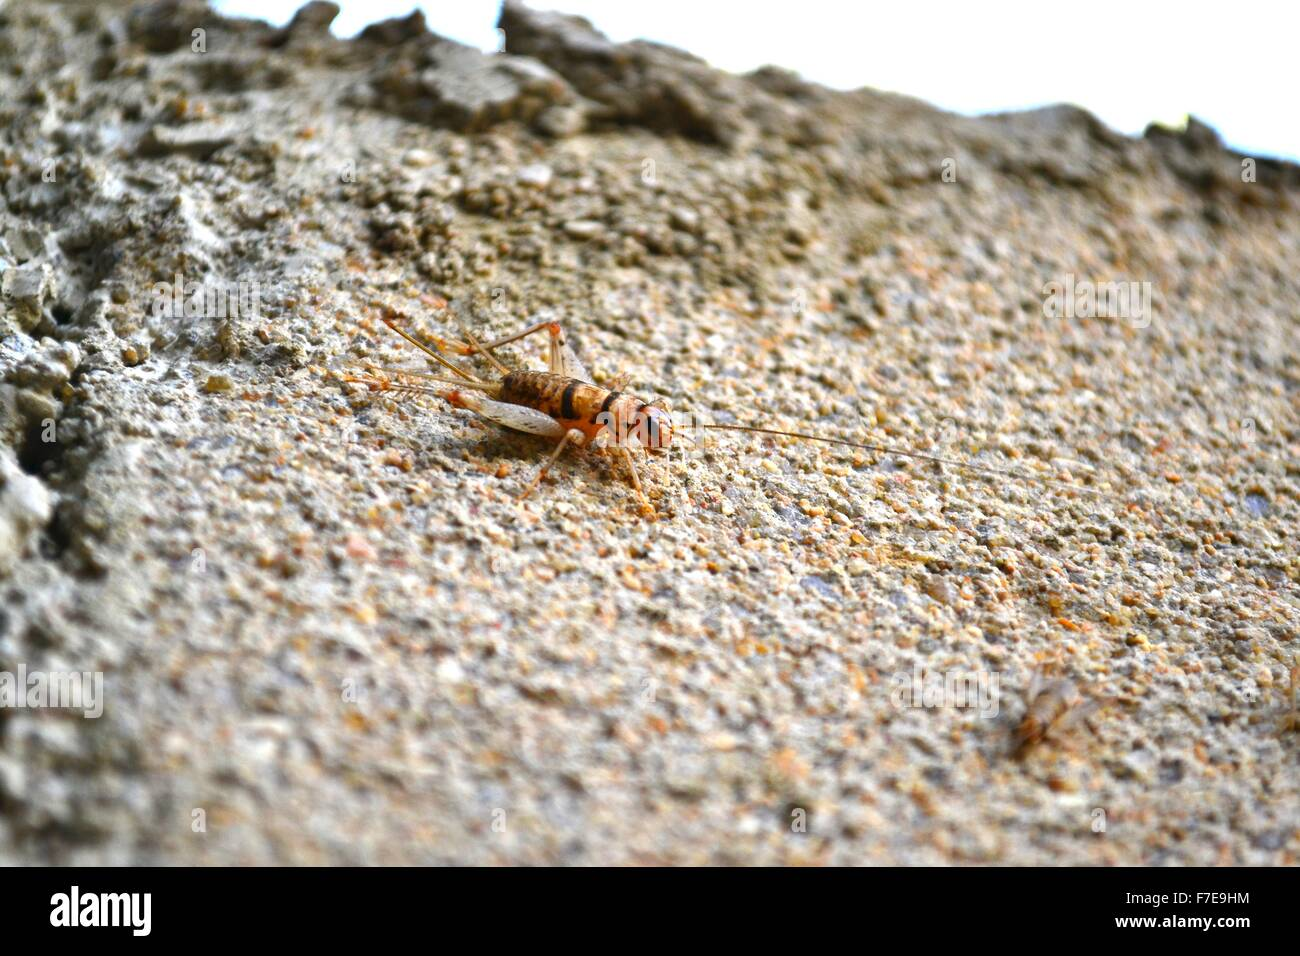 A cricket hopping on a building - Stock Image